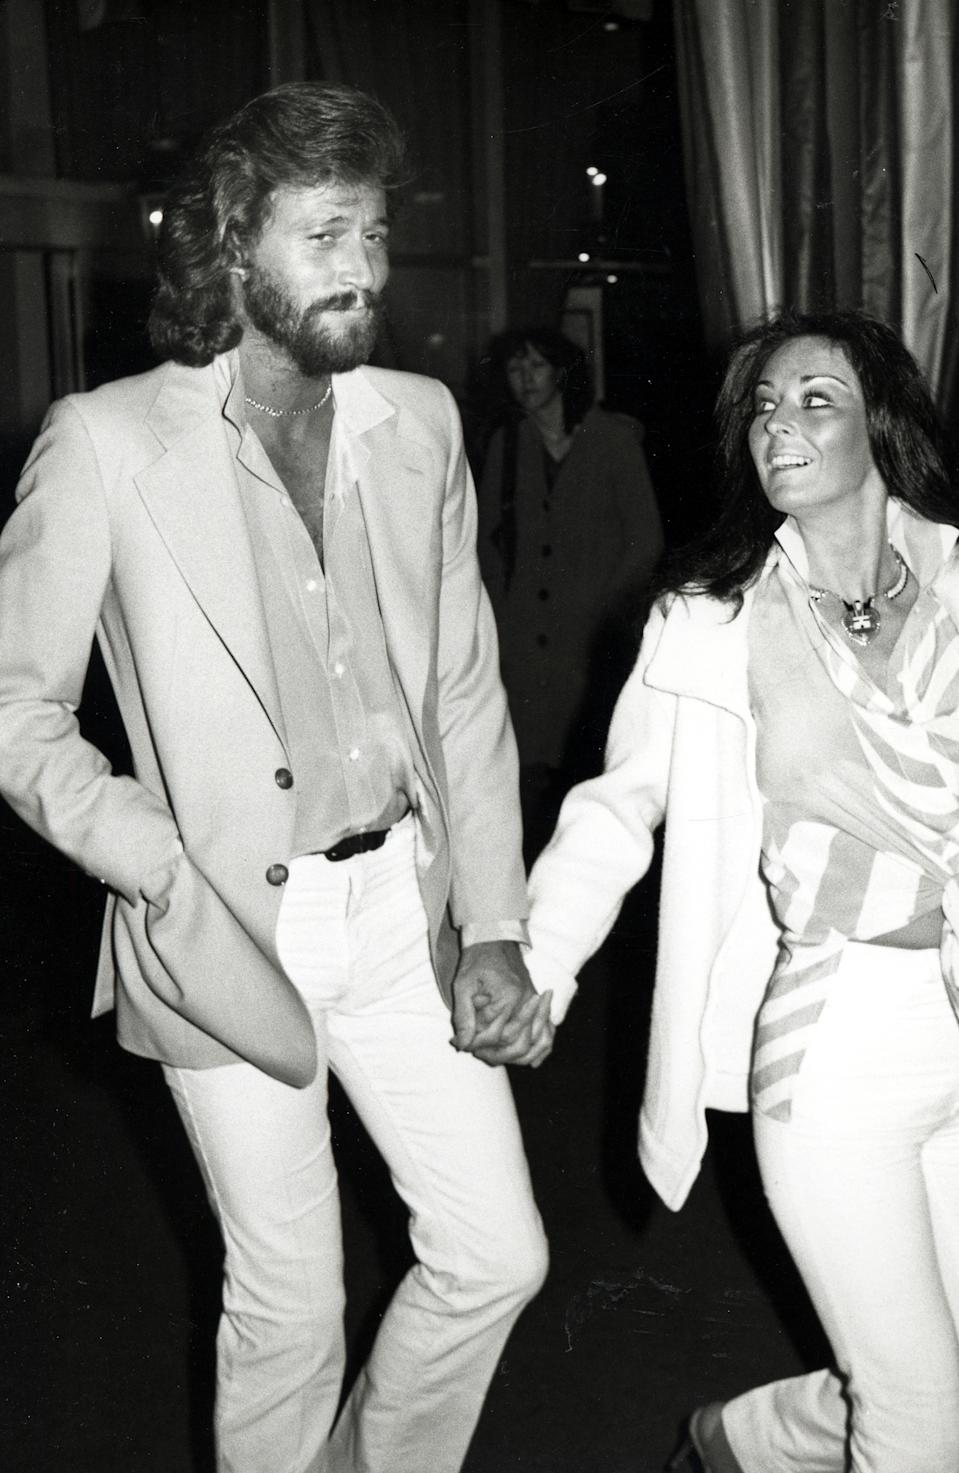 Barry Gibb and wife Linda Ann Gray during Barry Gibb and Wife Linda Ann Gray Sighting at the Hilton Hotel in Beverly Hills - February 8, 1980 at Hilton Hotel in Beverly Hills, California, United States. (Photo by Ron Galella/Ron Galella Collection via Getty Images)